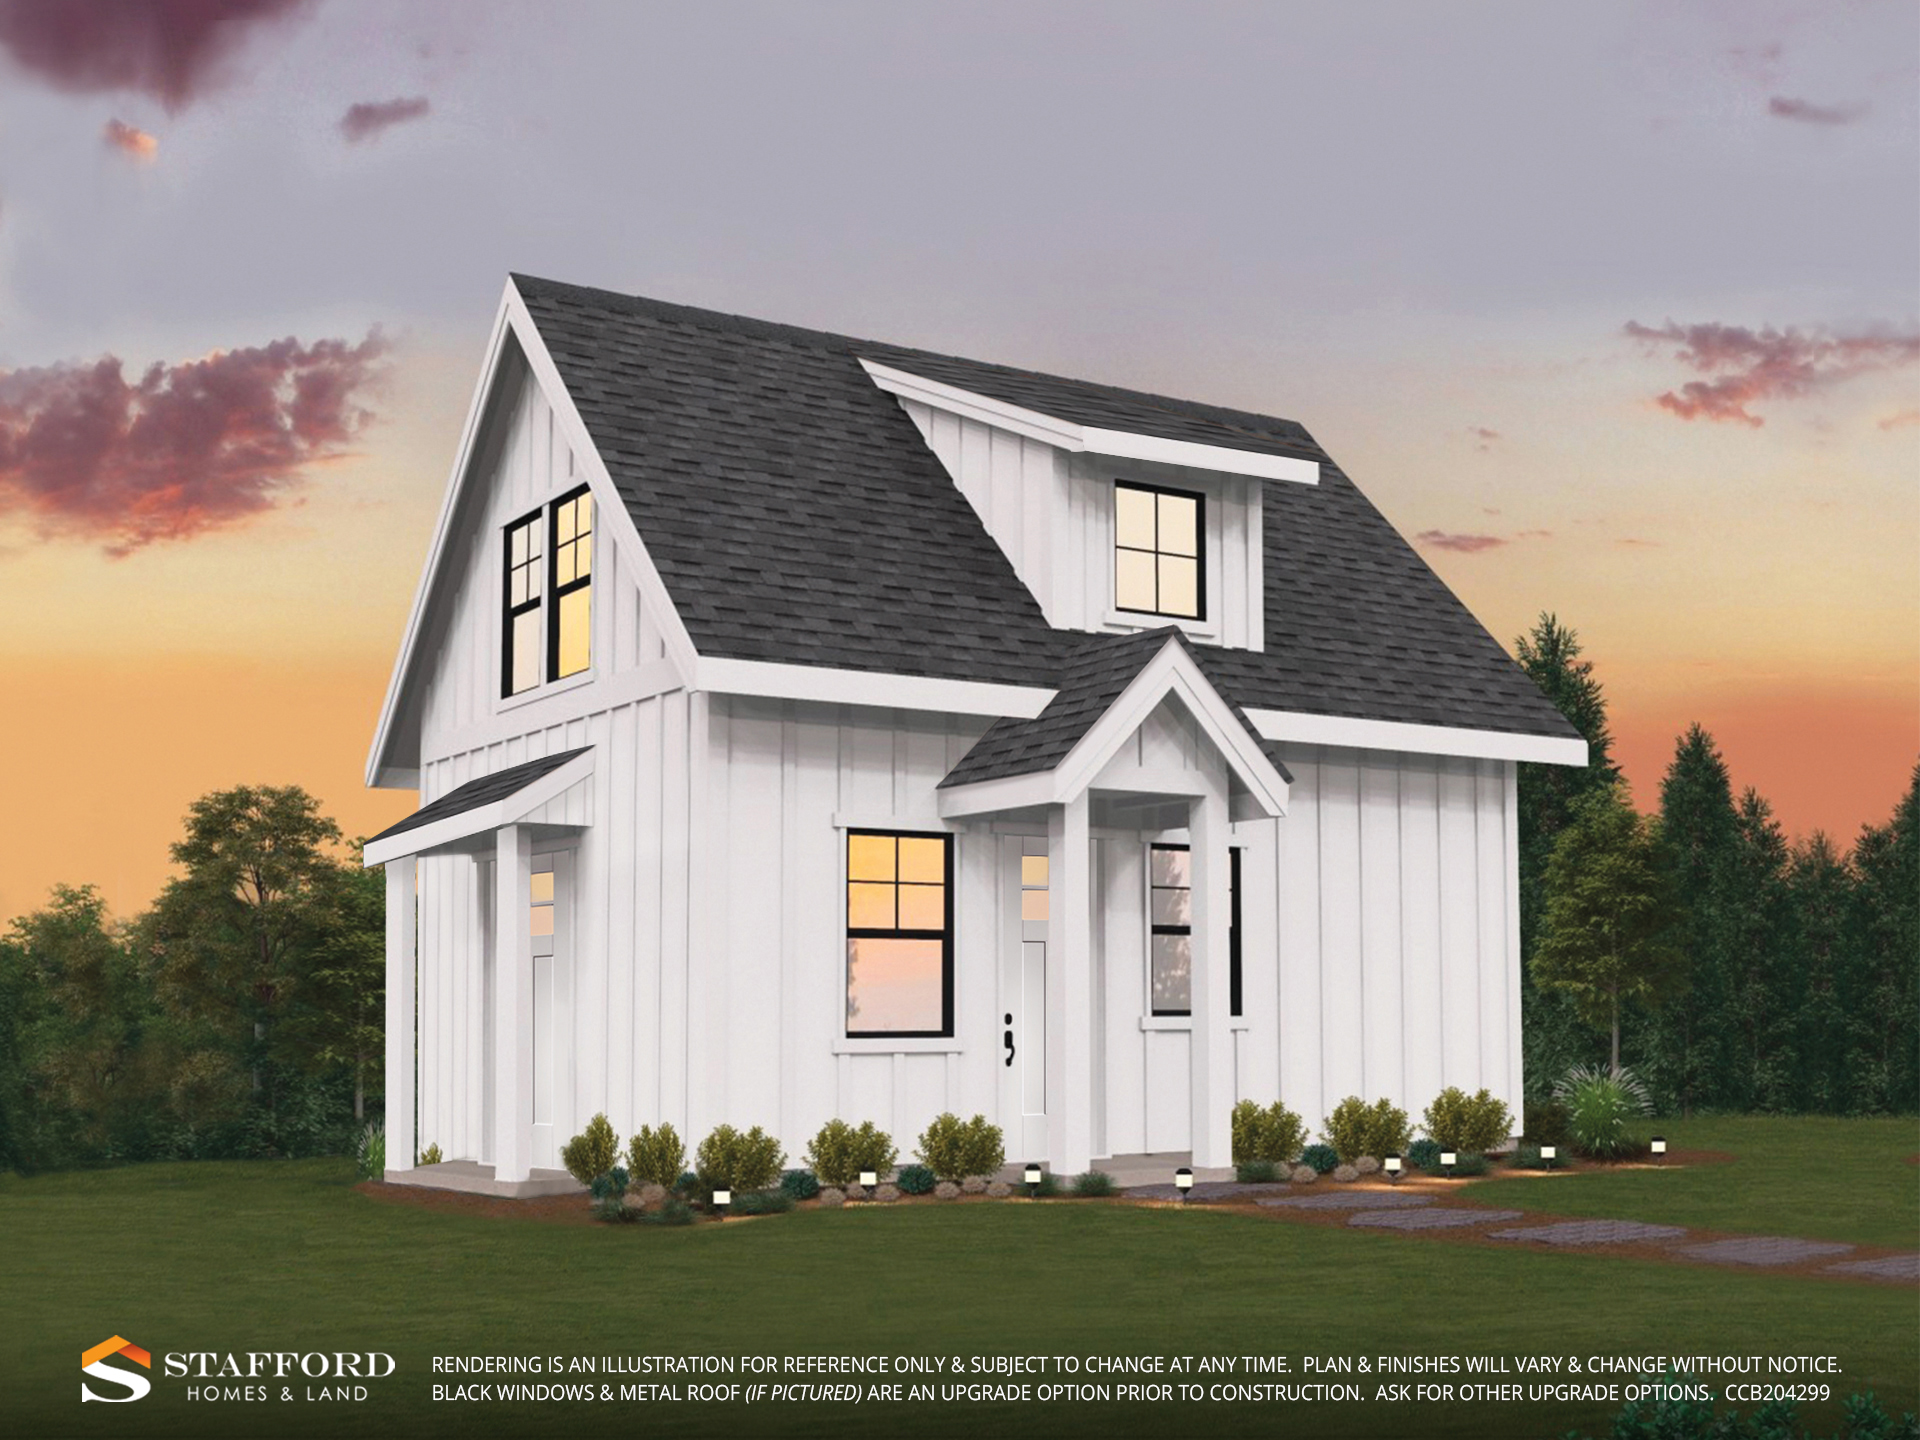 Remder of Berd Barn, farm inspired home in Pringle Creek color white.